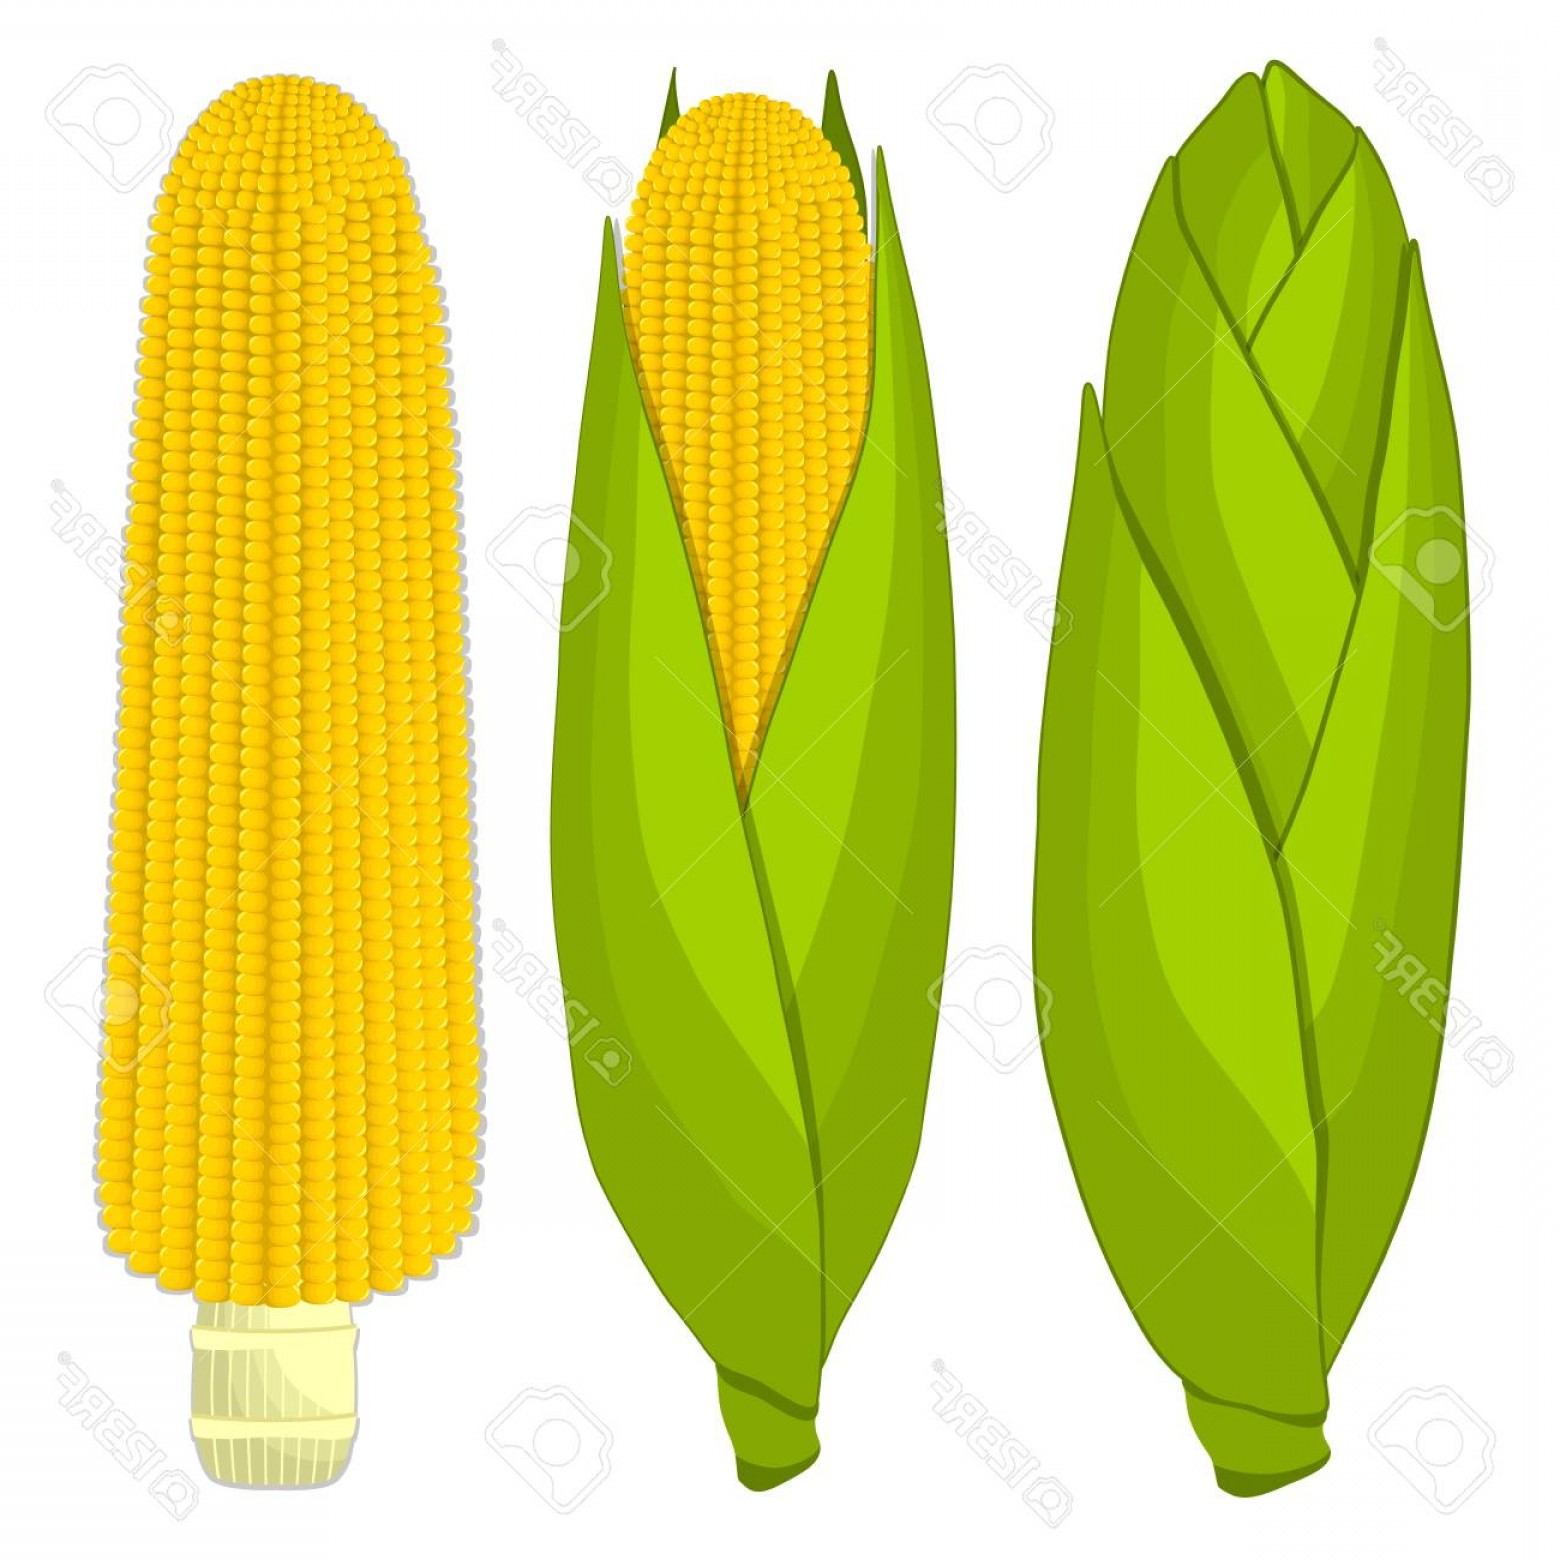 Maize Vector Tree: Photostock Vector Vector Illustration Logo For Whole Ripe Vegetable Yellow Corn With Green Stem Leaf Cut Sliced Corn D